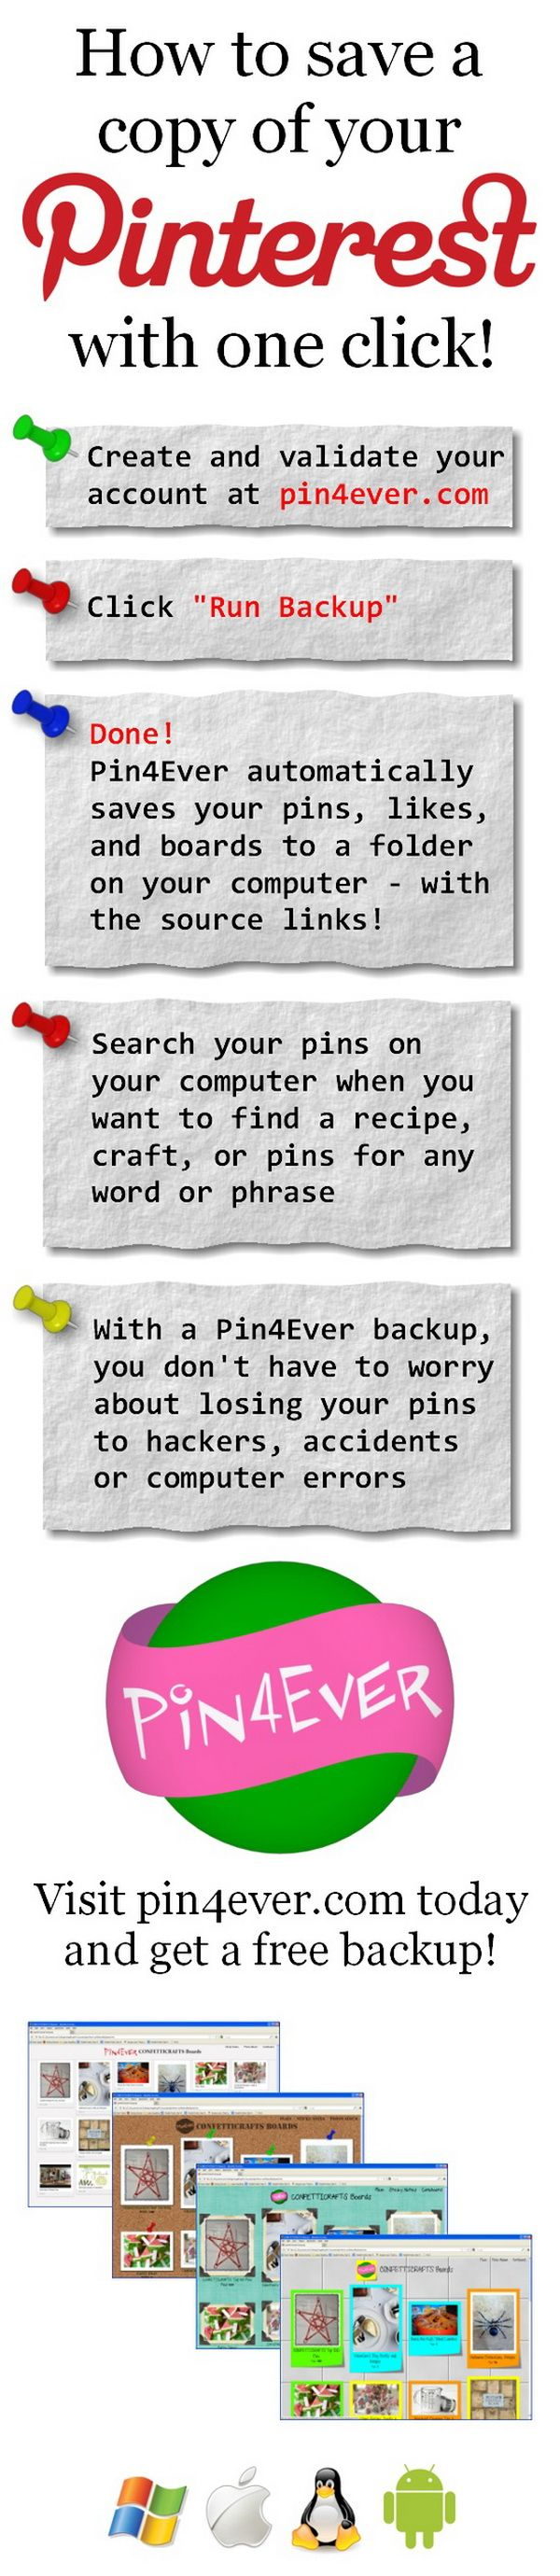 how to save a copy of your pinterest with one-click